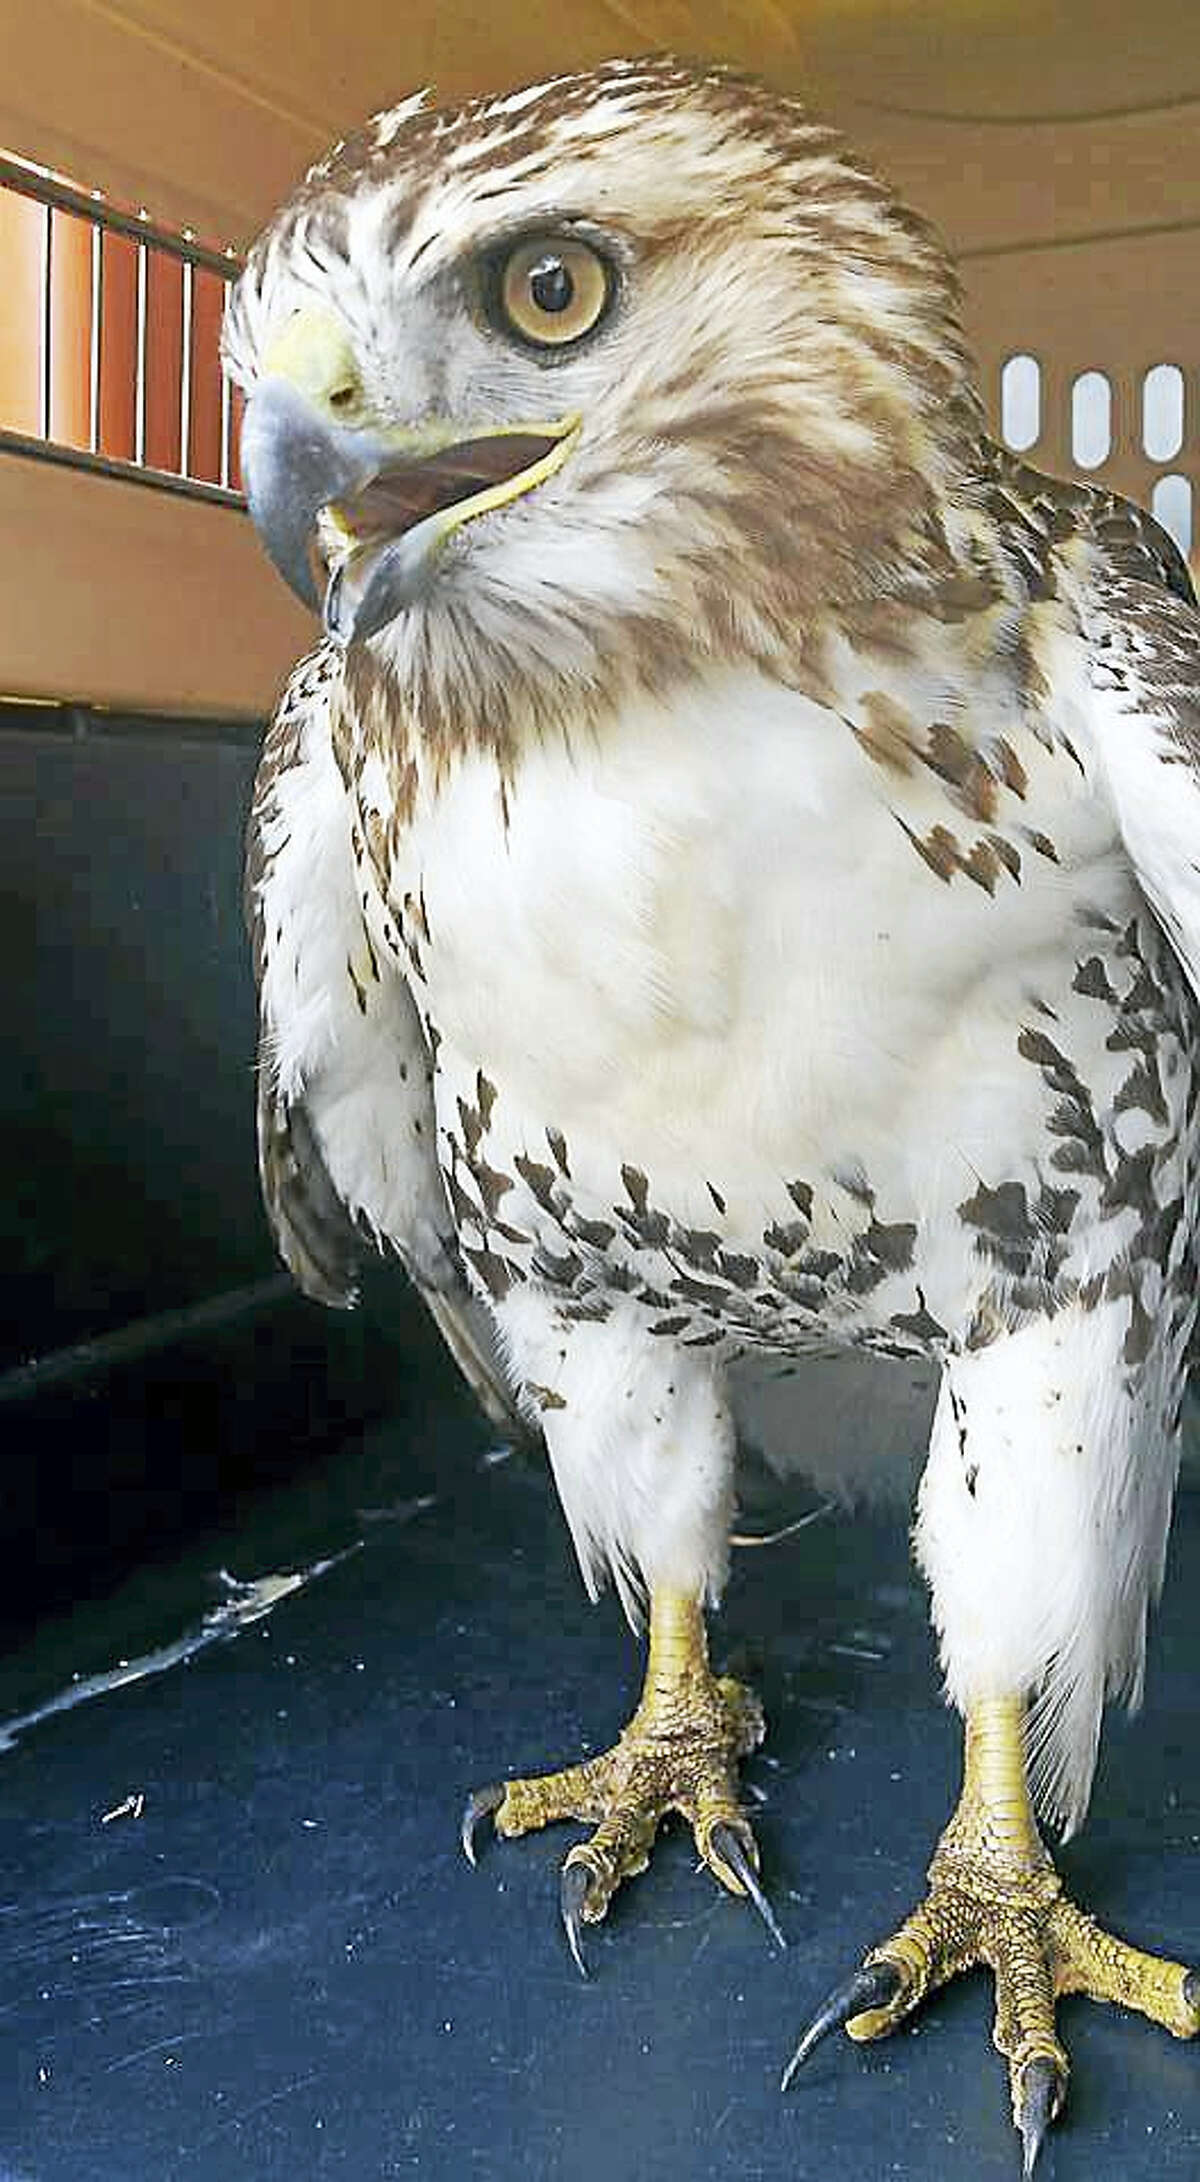 State troopers, the Department of Transportation and state Environmental Conservation Police helped rescue a hawk found walking Wednesday on Interstate 91 near northbound Exit 21. The bird was turned over to animal control officers.